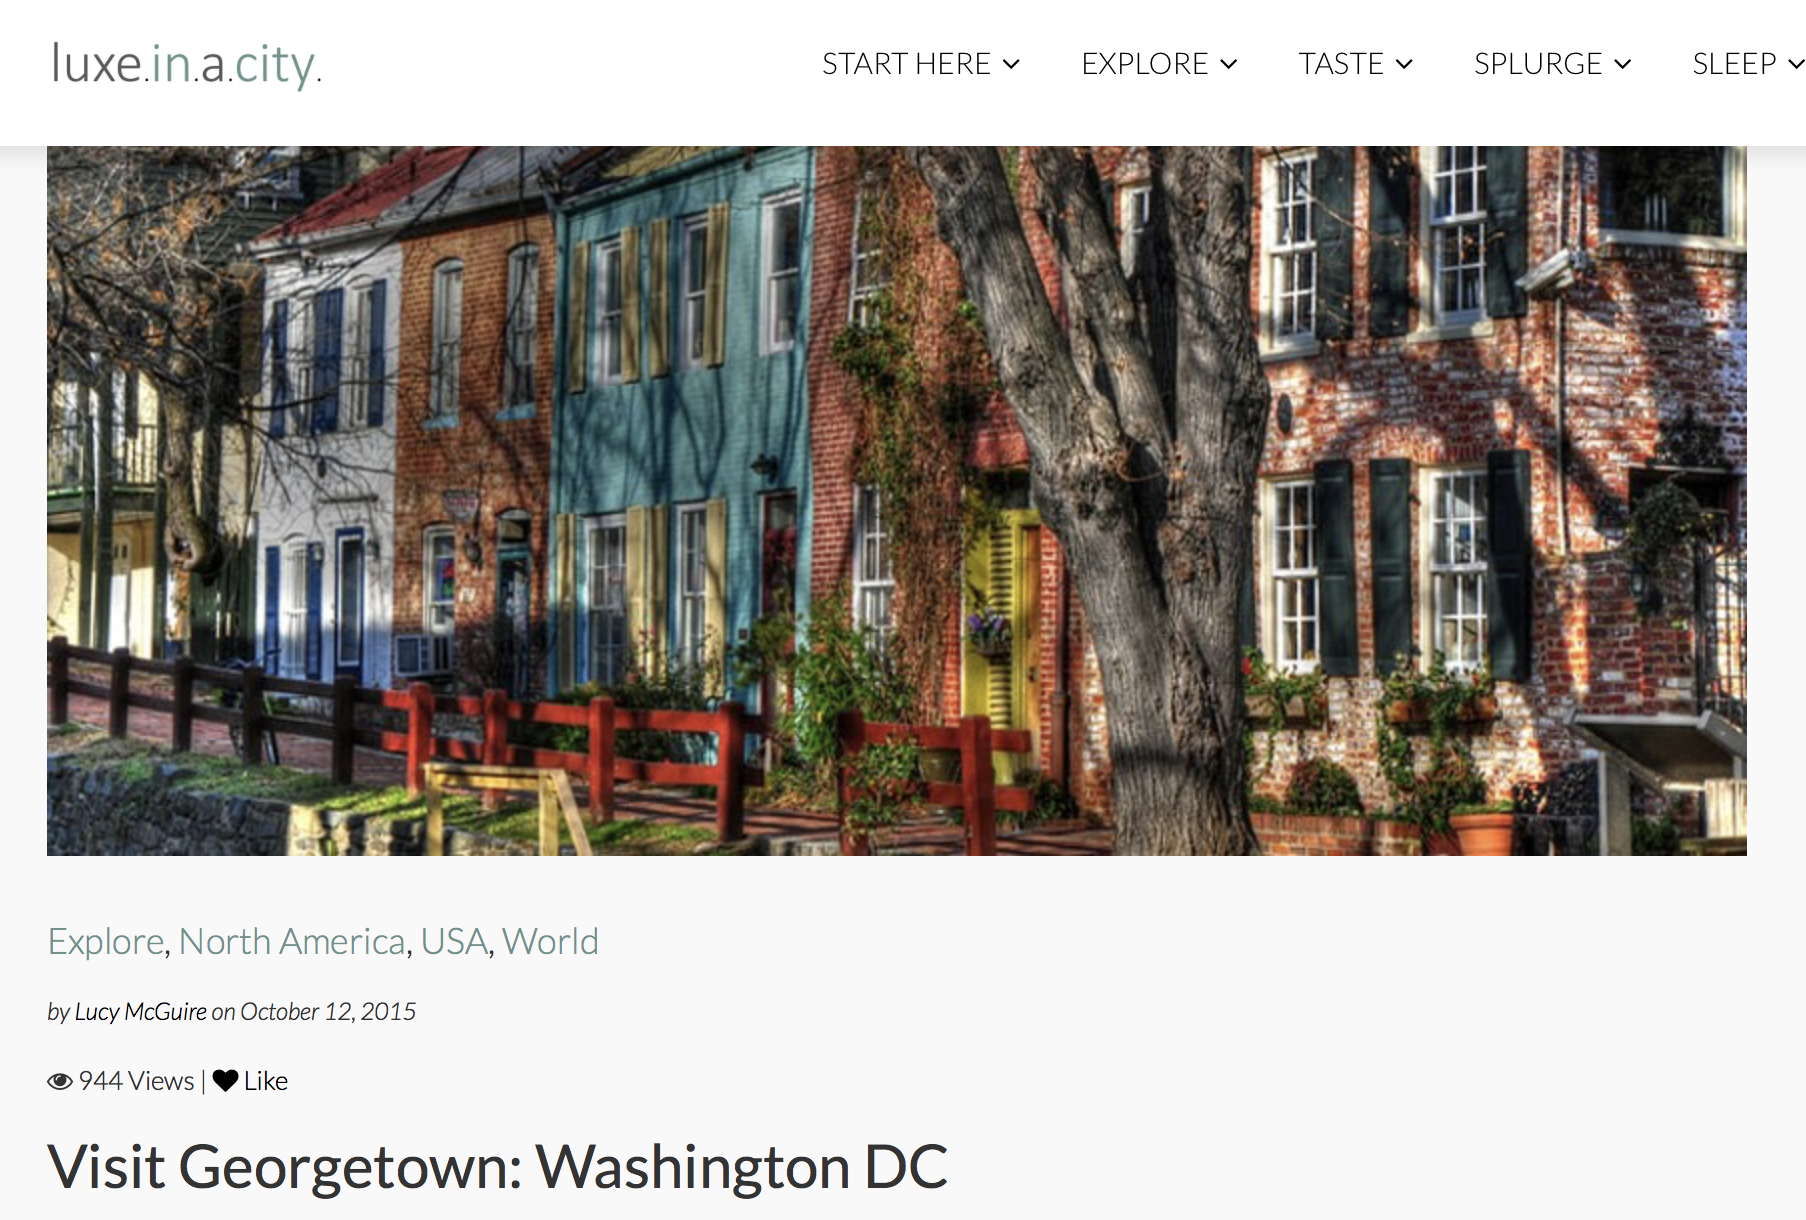 Visit Georgetown Washington DC